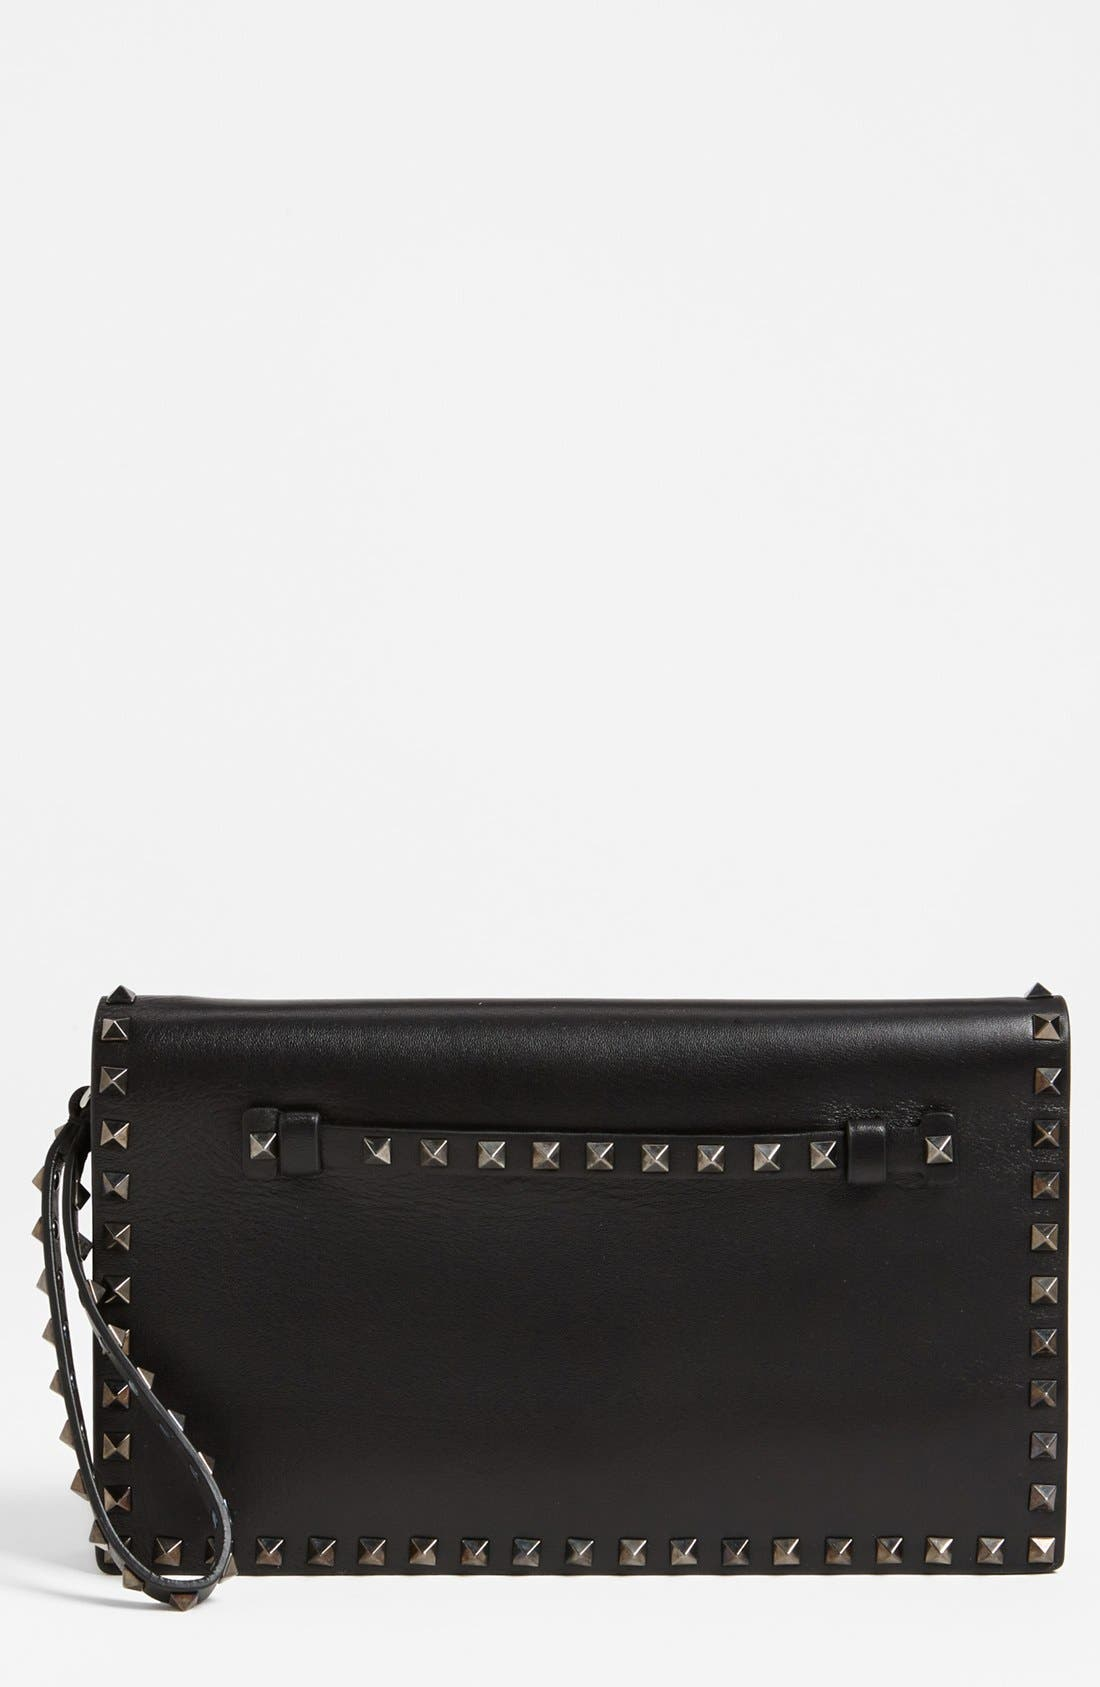 Alternate Image 1 Selected - Valentino 'Rockstud - Noir' Leather Flap Clutch